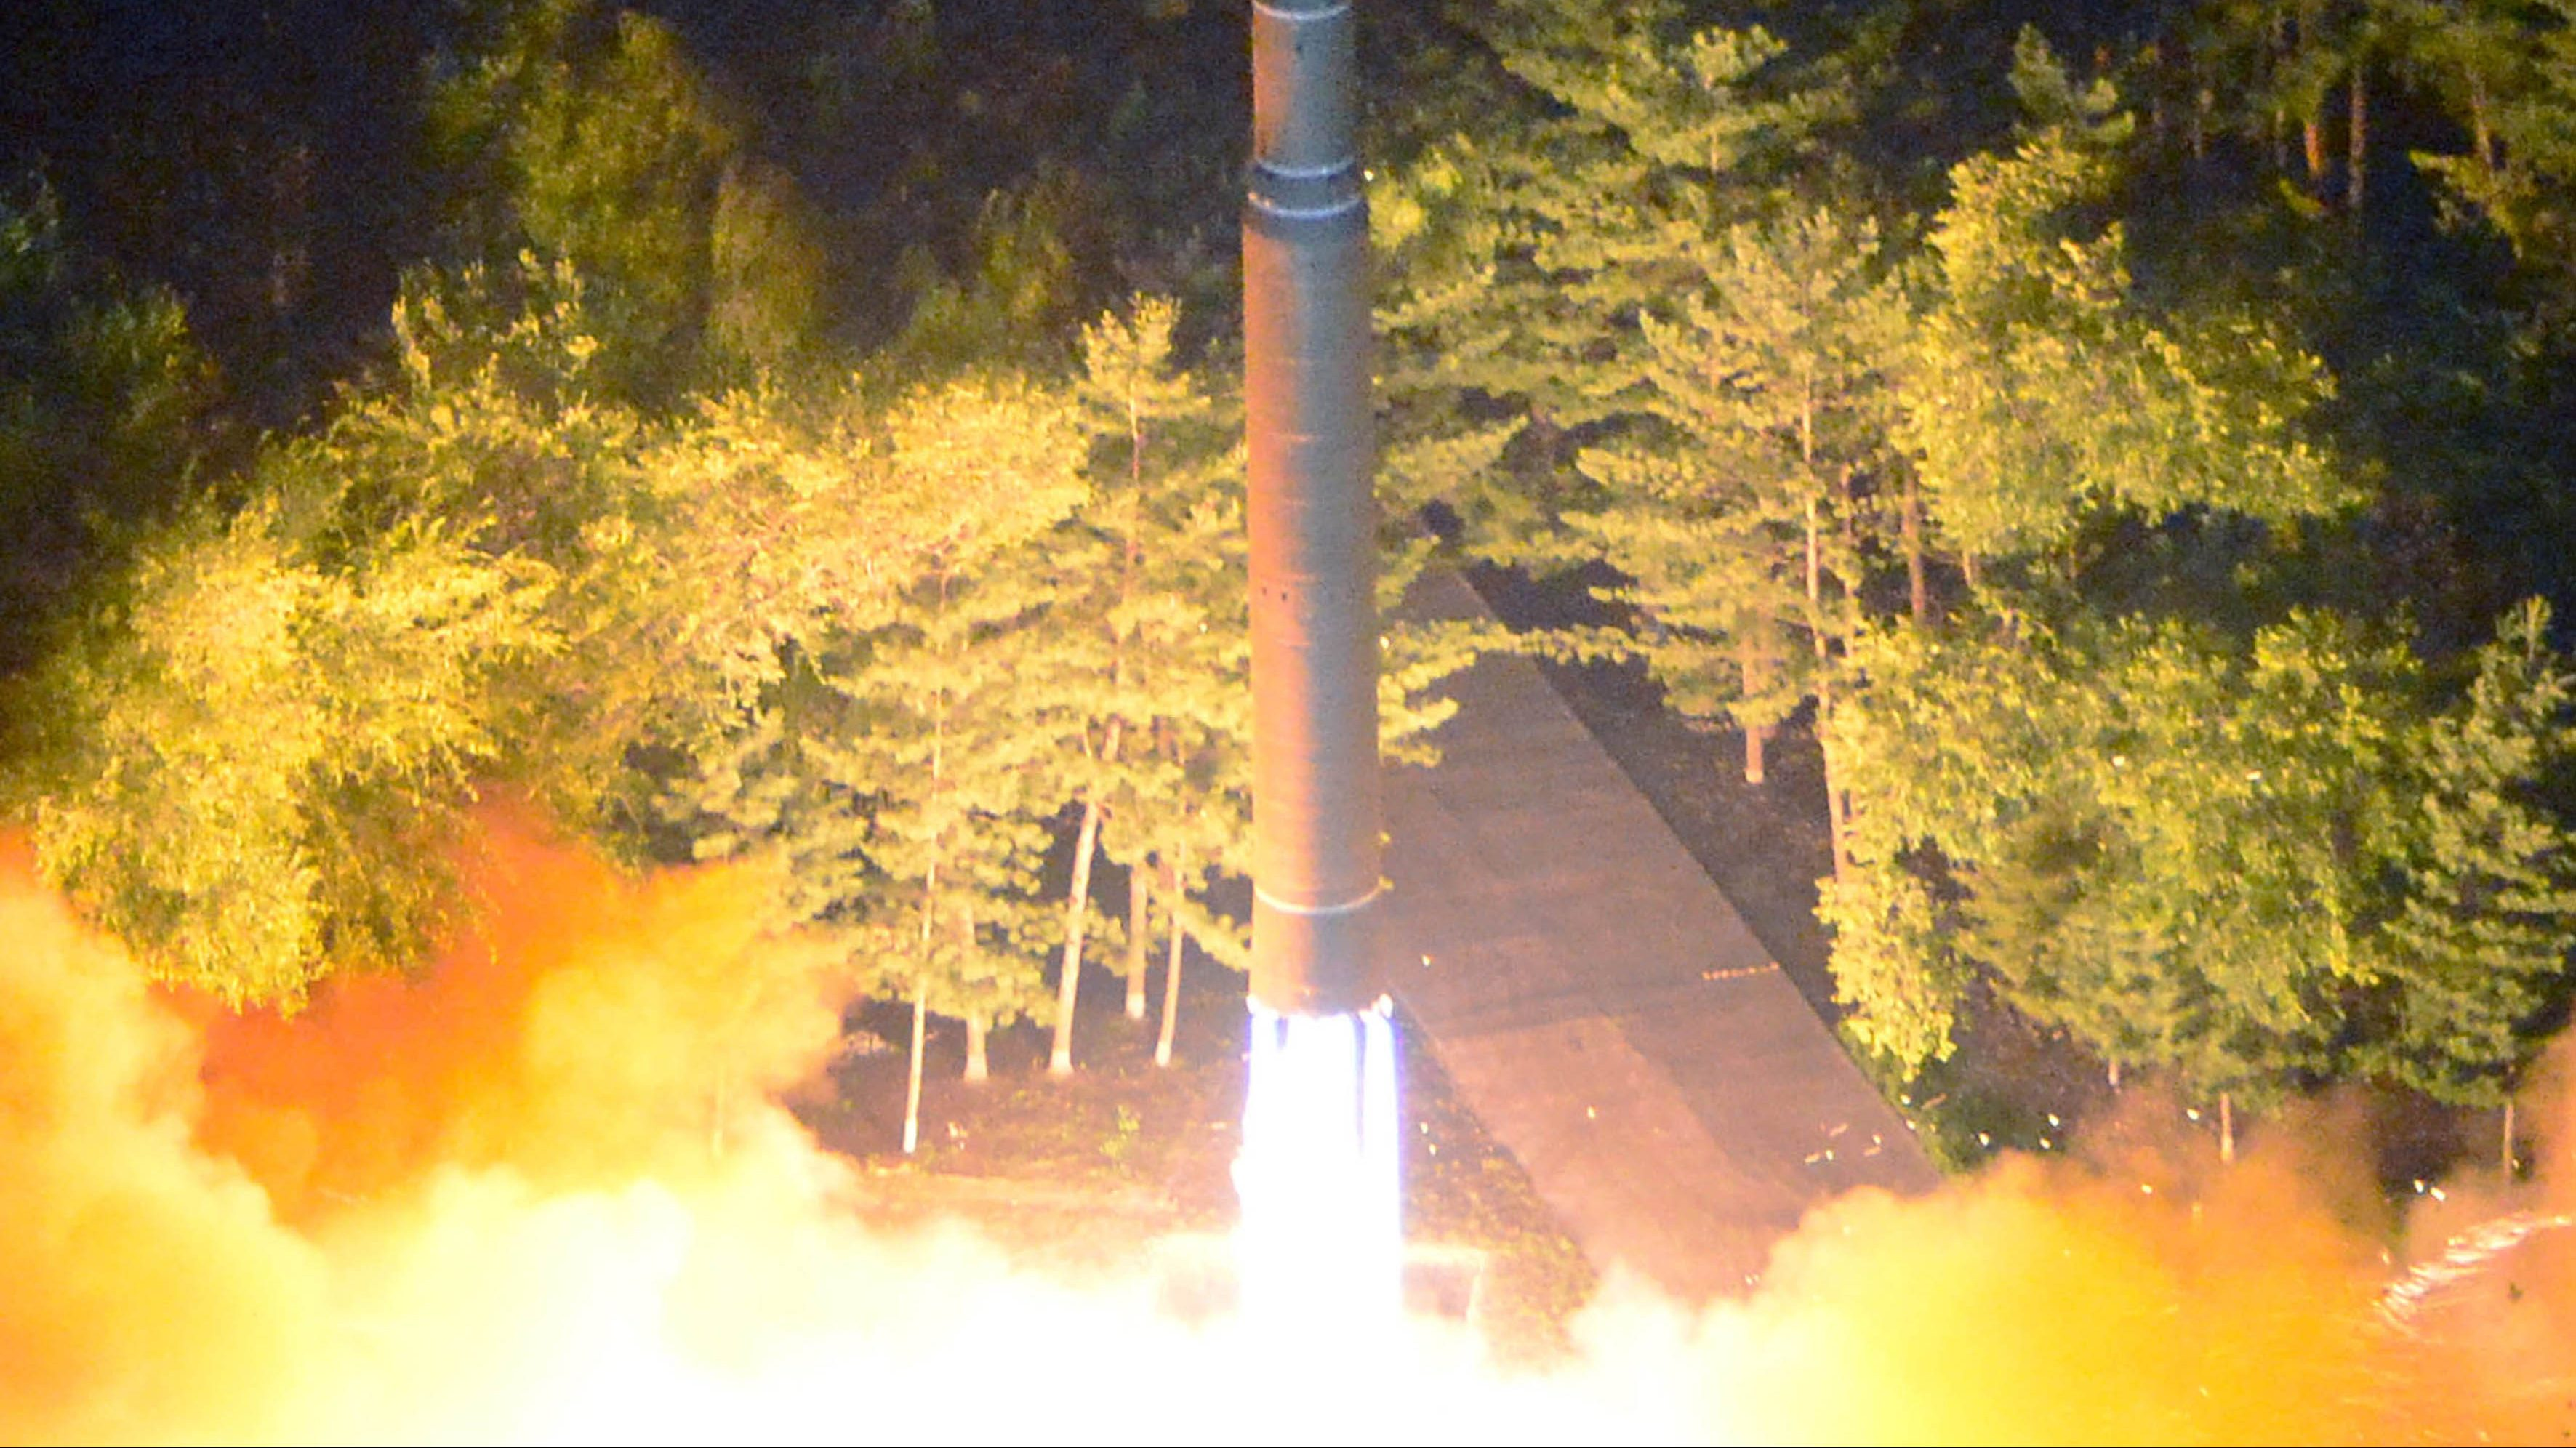 A photo made available by the North Korean Central News Agency (KCNA), the state news agency of North Korea, shows the second test-fire of ICBM Hwasong-14 at an undisclosed location in North Korea, 28 July 2017 (issued 29 July 2017). According to South Korea's Joint Chiefs of Staff, North Korea has test-fired a ballistic missile into the East Sea on 28 July 2017, from the North's Jagang Province. North Korean leader Kim Jong-un hailed the latest intercontinental ballistic missile test as a success claiming he could strike the entire continental US, state media reported.